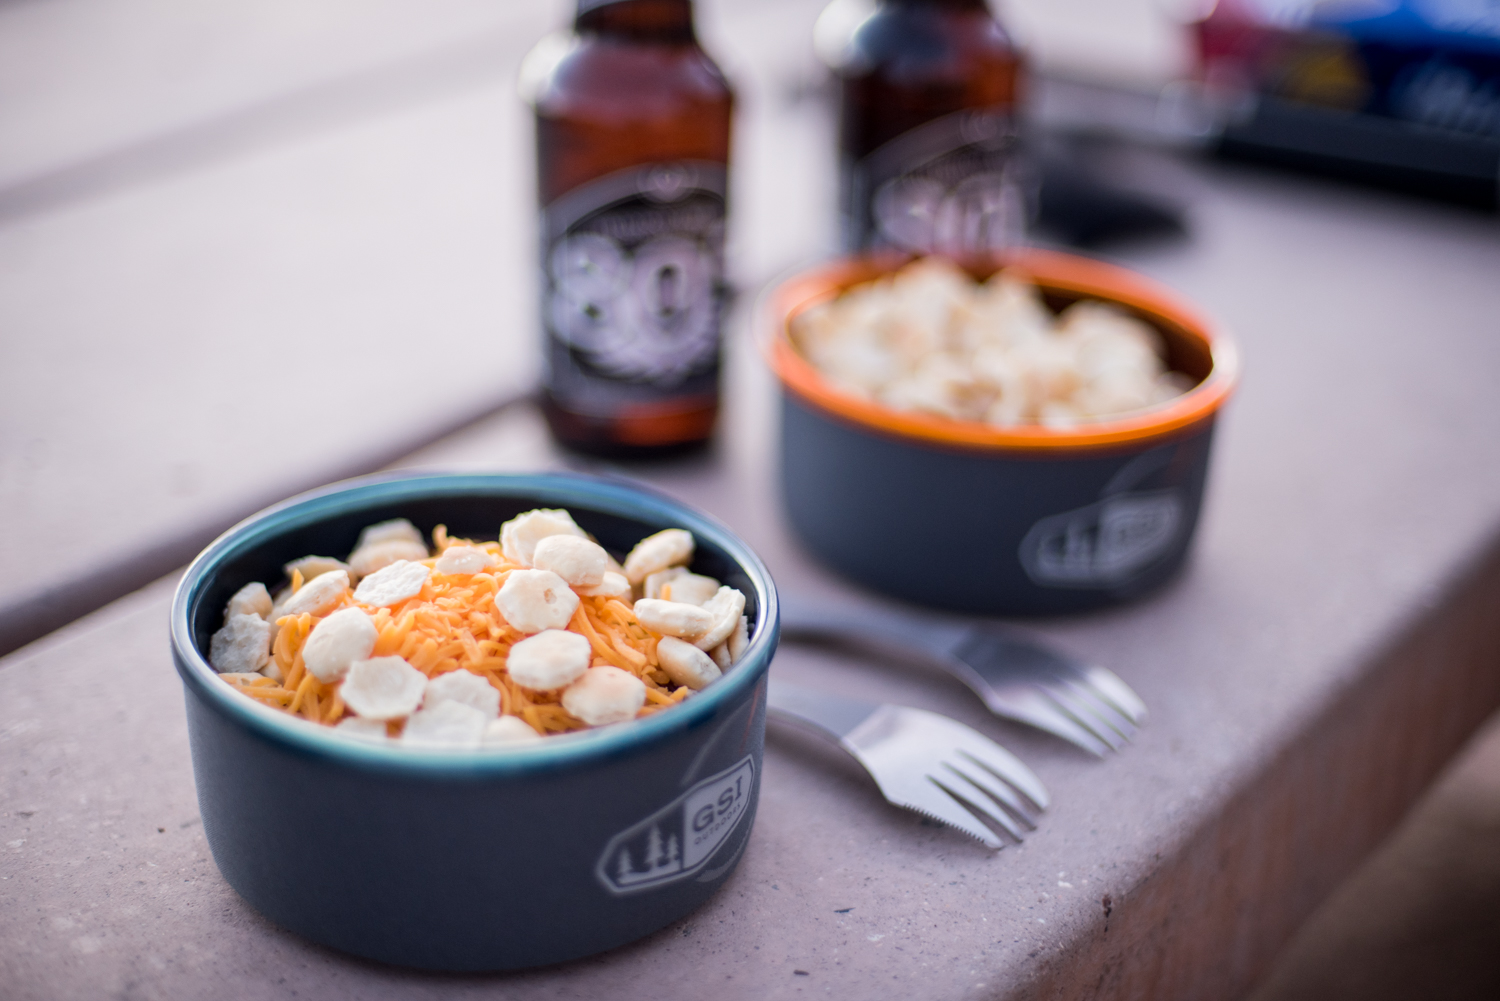 Loaded chili and beer. And our titanium sporks, not from GSI.